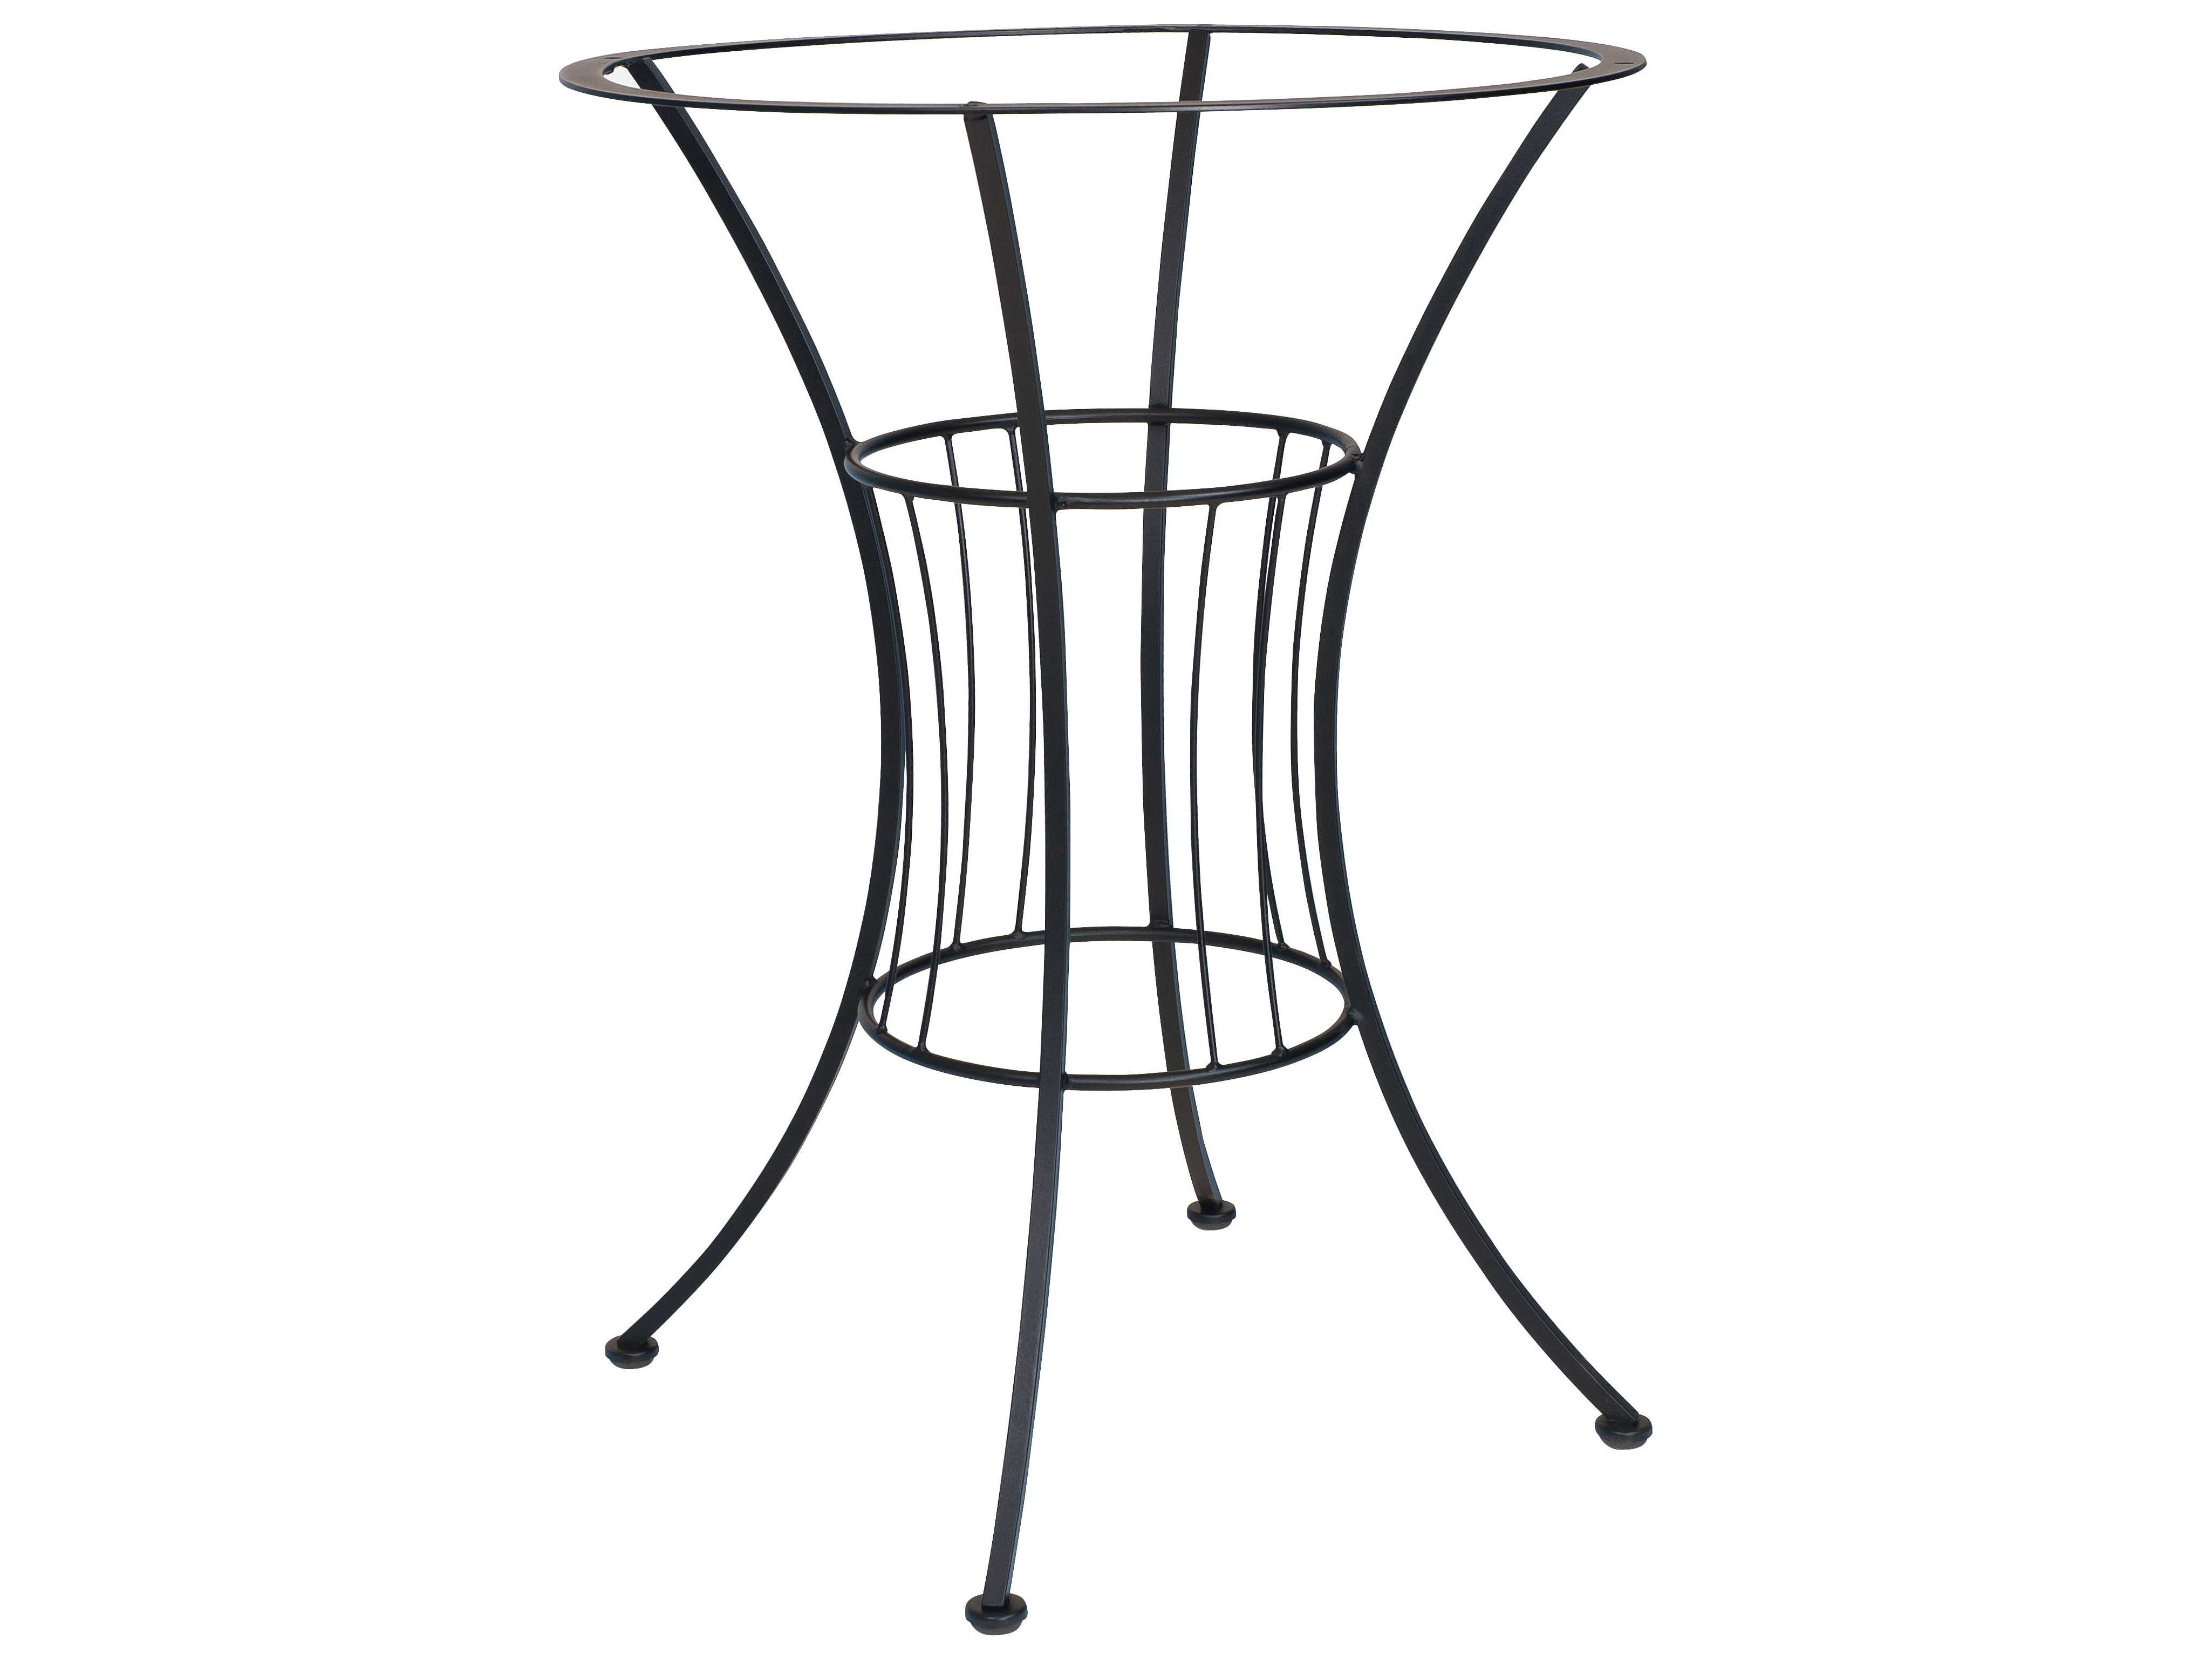 Woodard easton wrought iron 30 5 bar height table base for Outdoor table bases wrought iron